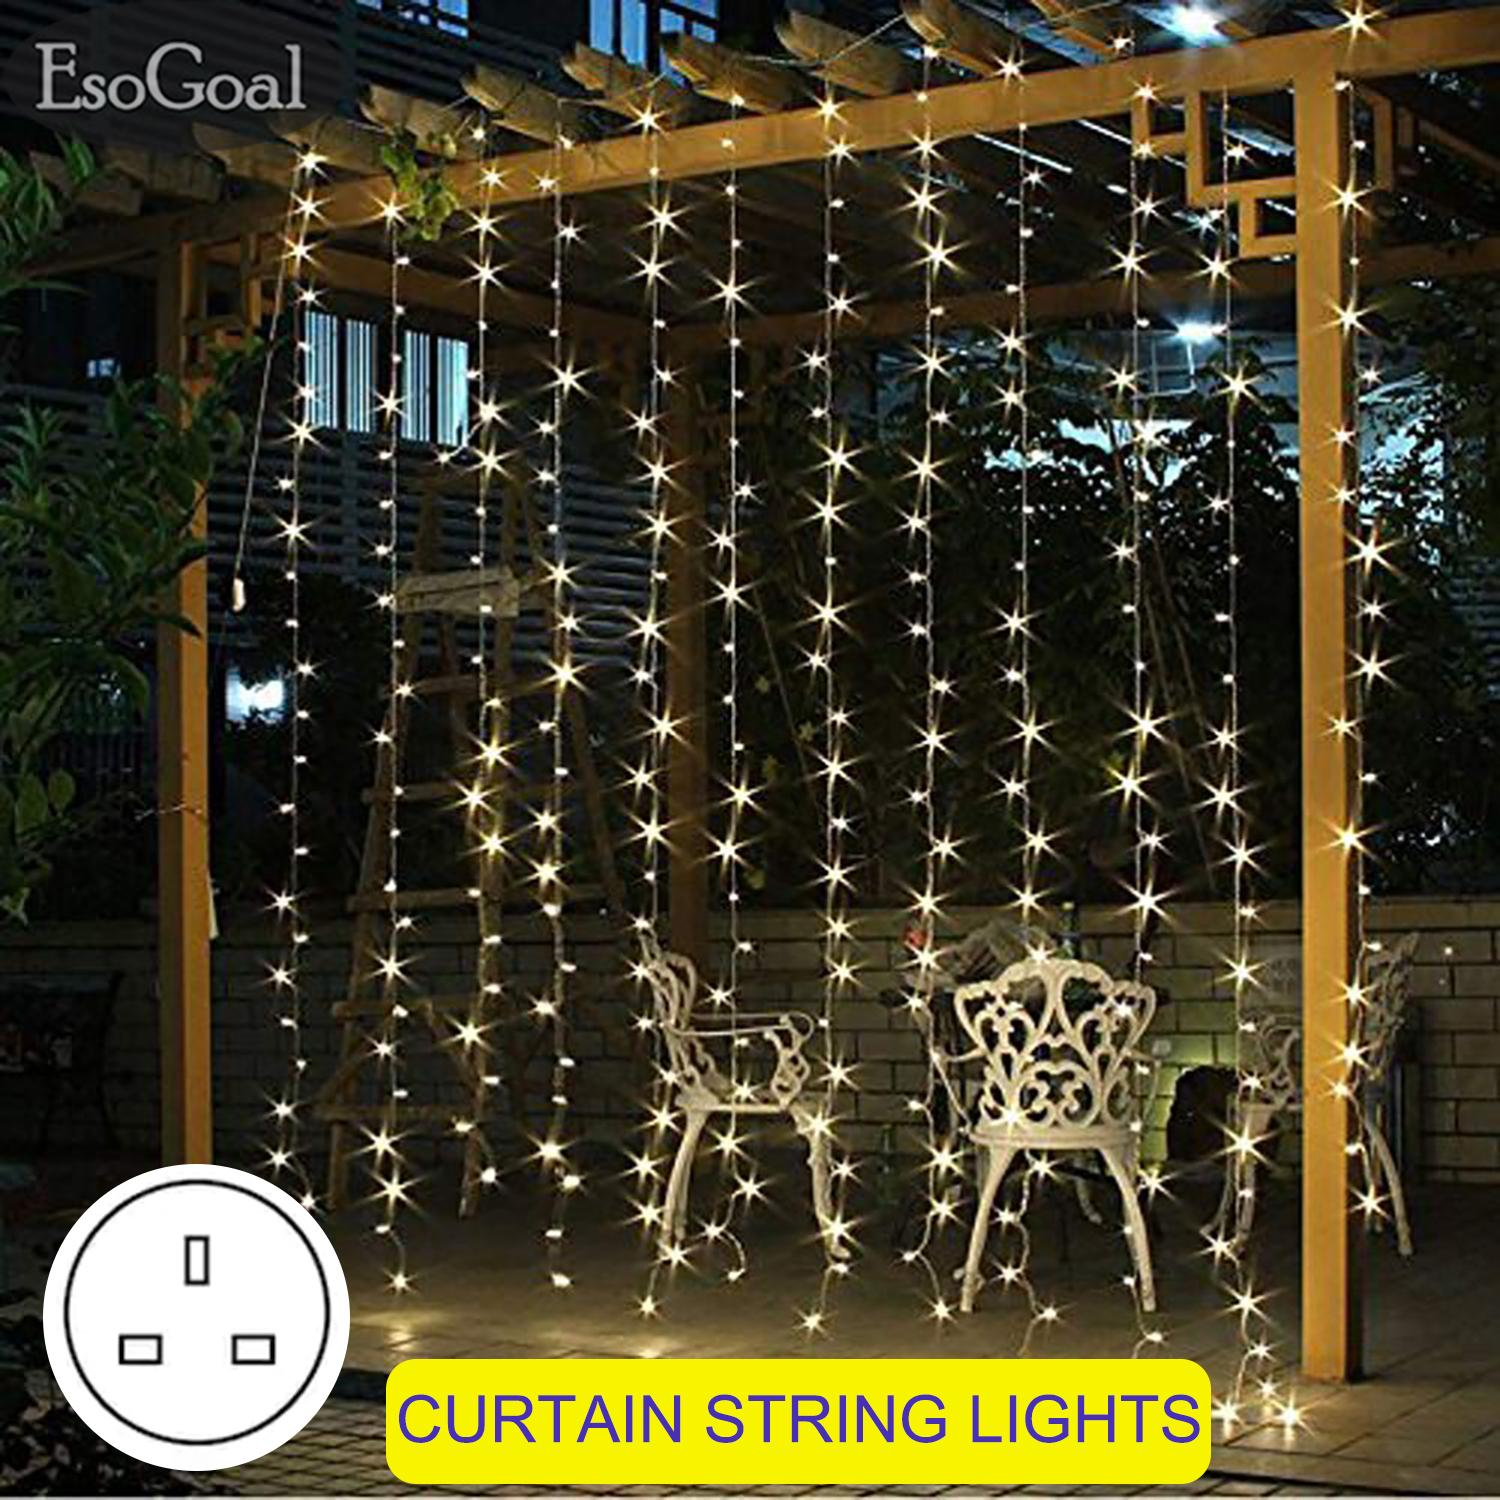 EsoGoal Fairy Lights Curtain Droop LED String Strip Light Icicle Curtain String Lights Window Wall Curtain Decoration Lights for Christmas Xmas Wedding Party Singapore